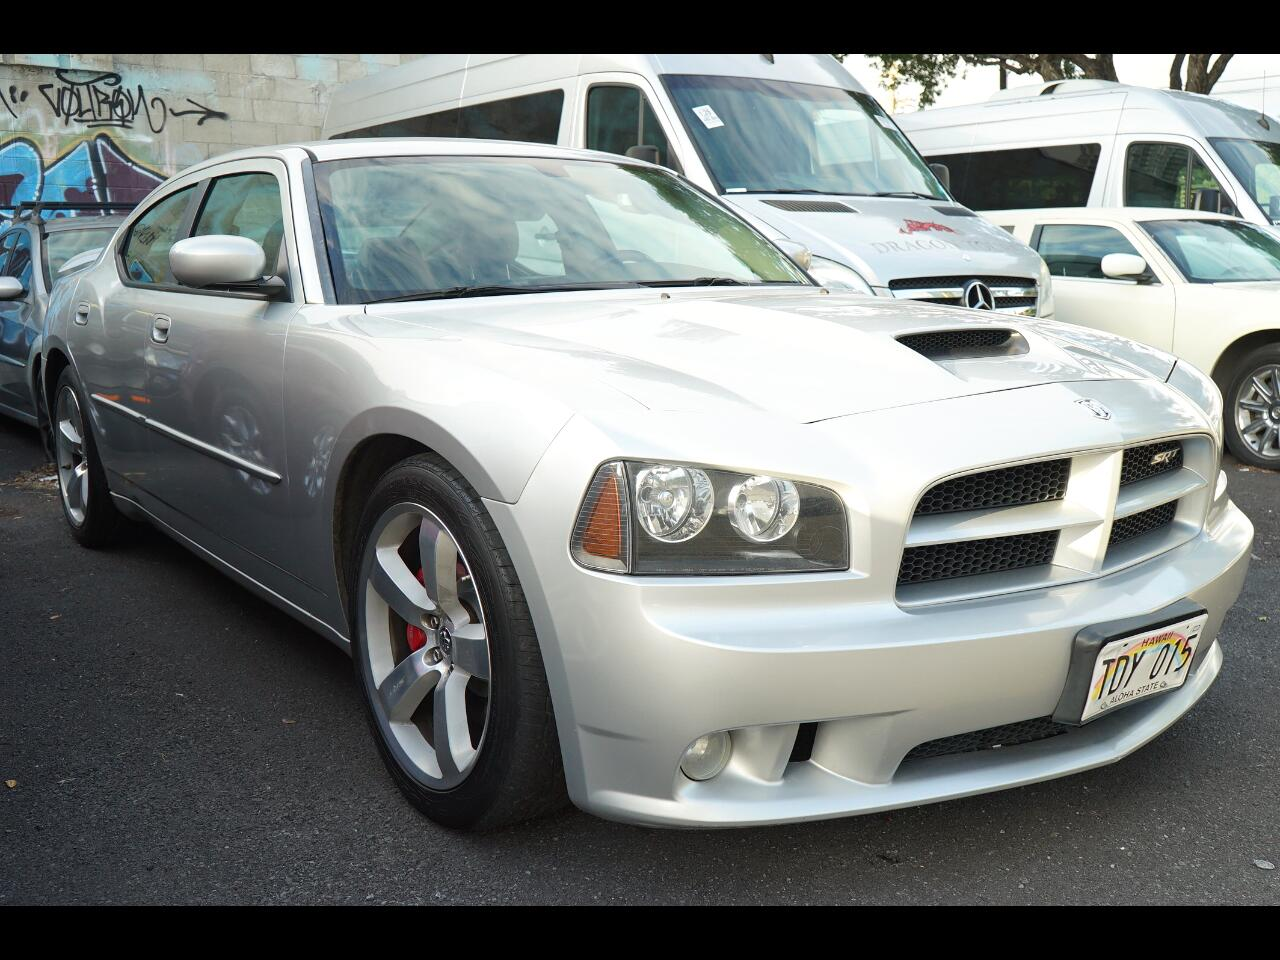 2007 Dodge Charger 4dr Sdn 5-Spd Auto SRT8 RWD